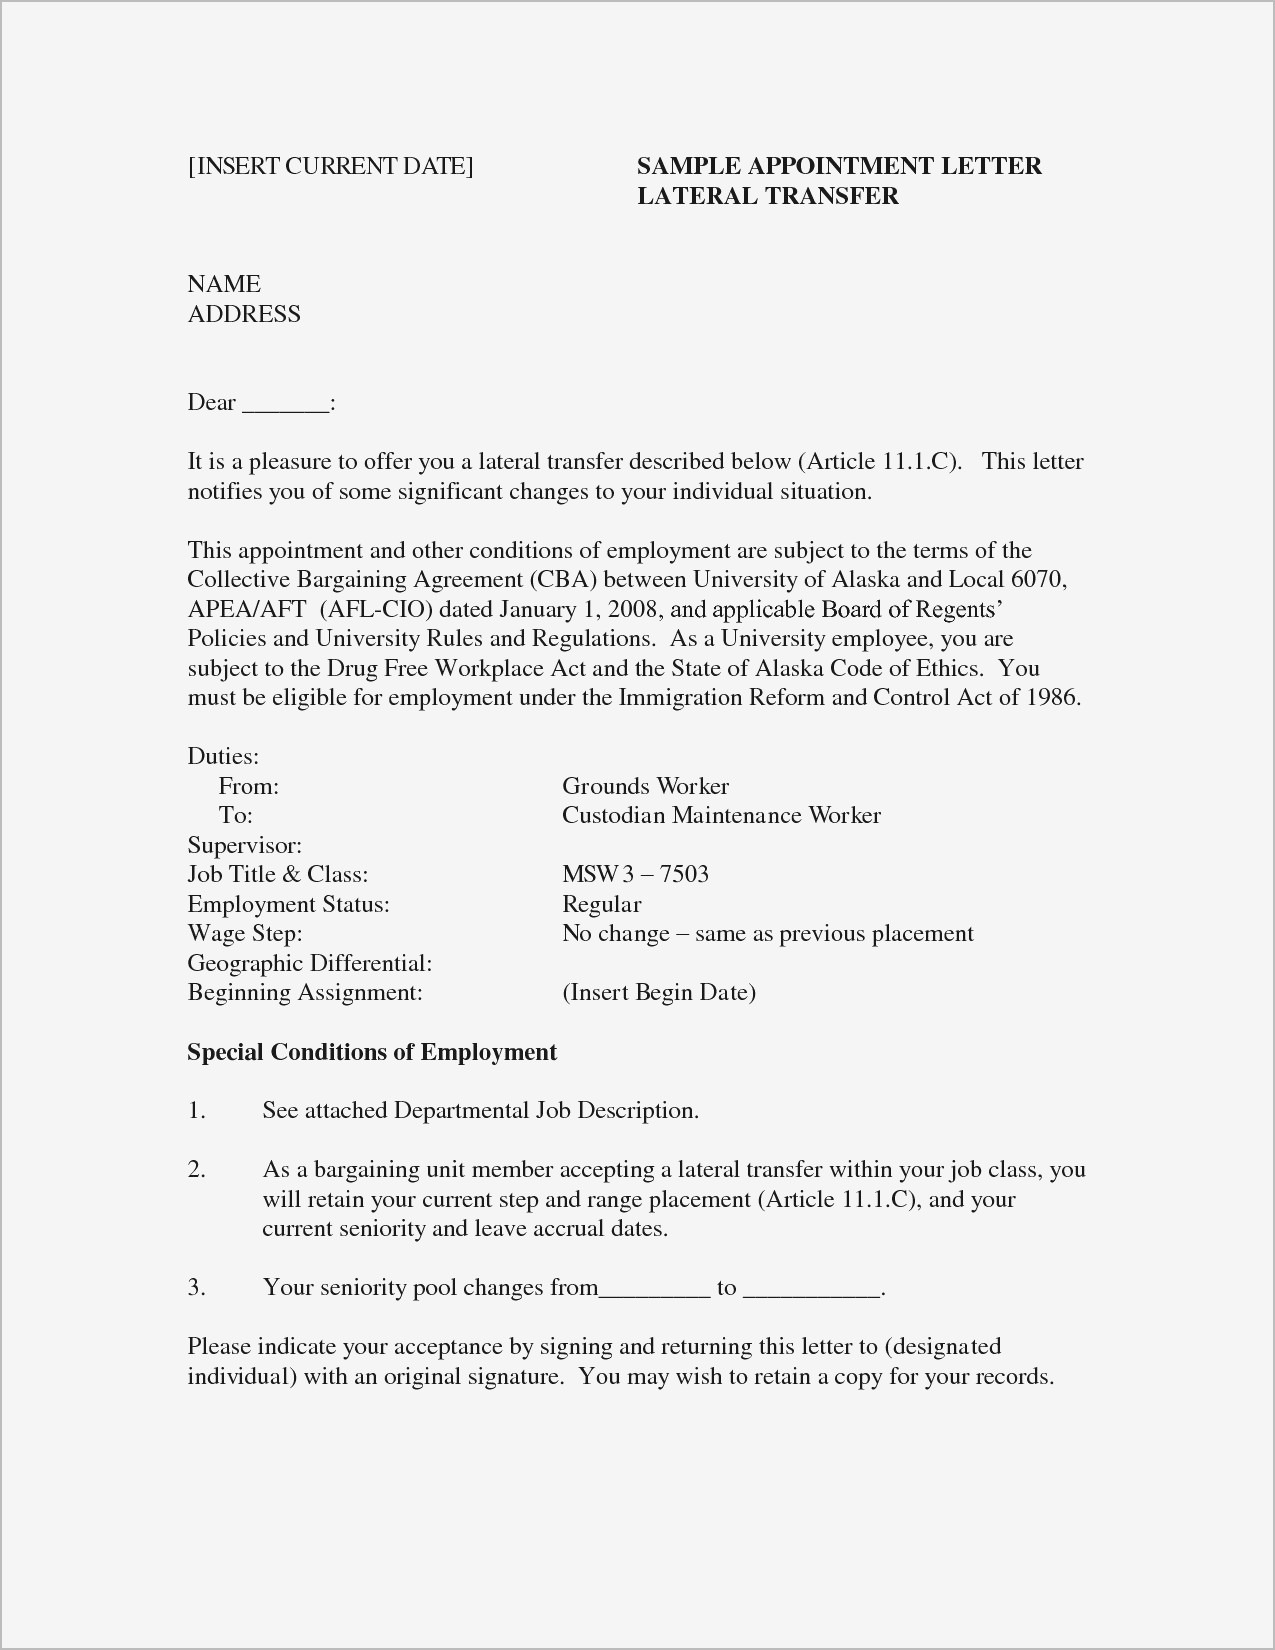 cover letter outline template Collection-Cover Letter Template Word 2014 Fresh Relocation Cover Letters Od Specialist Sample Resume Portfolio 15-r